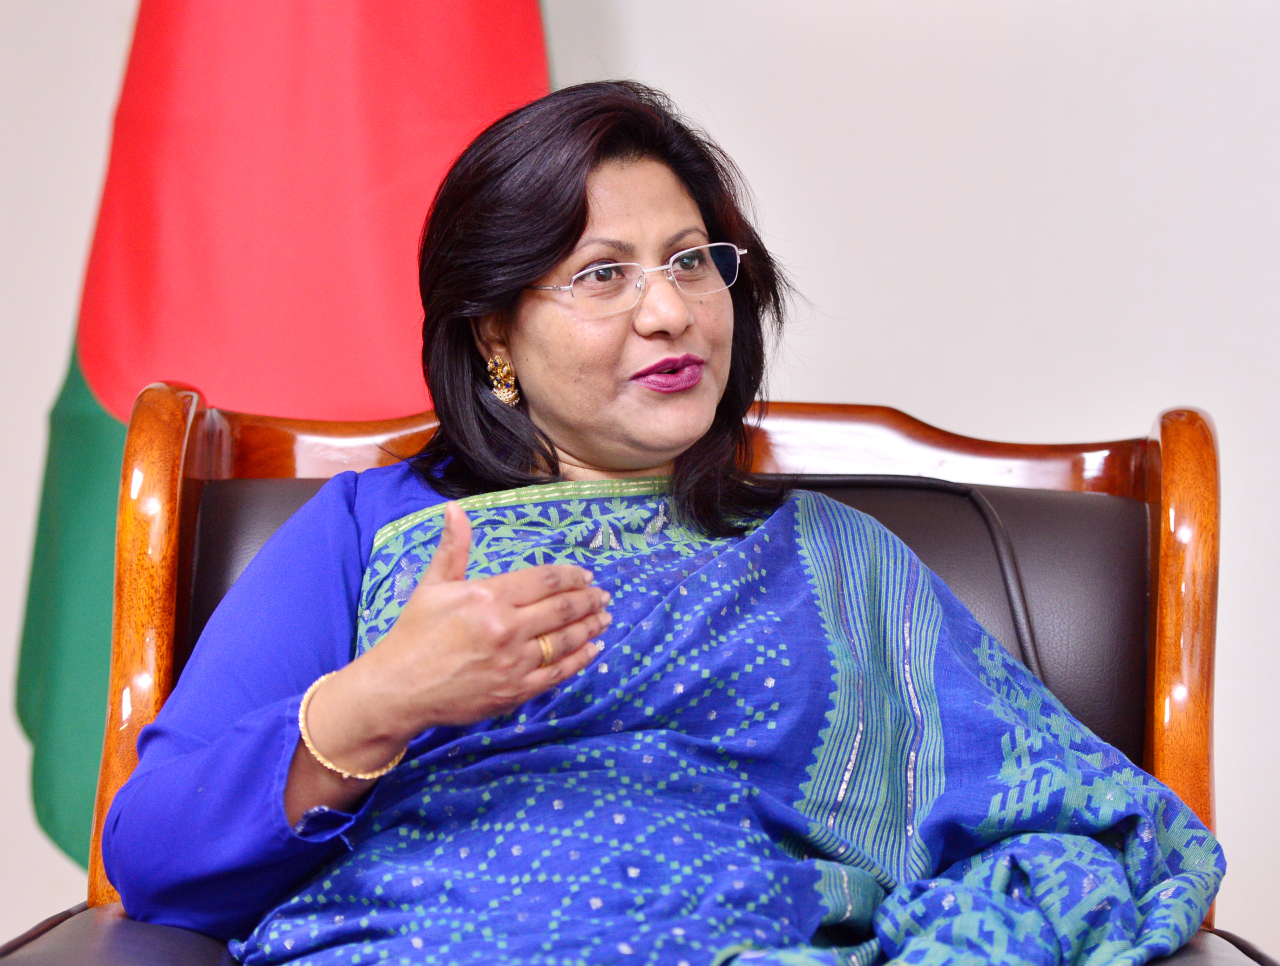 Bangladeshi Ambassador to South Korea Abida Islam speaks during an interview with The Korea Herald at the Bangladesh Embassy in Seoul in December 2019. (Park Hyun-koo/ The Korea Herald)